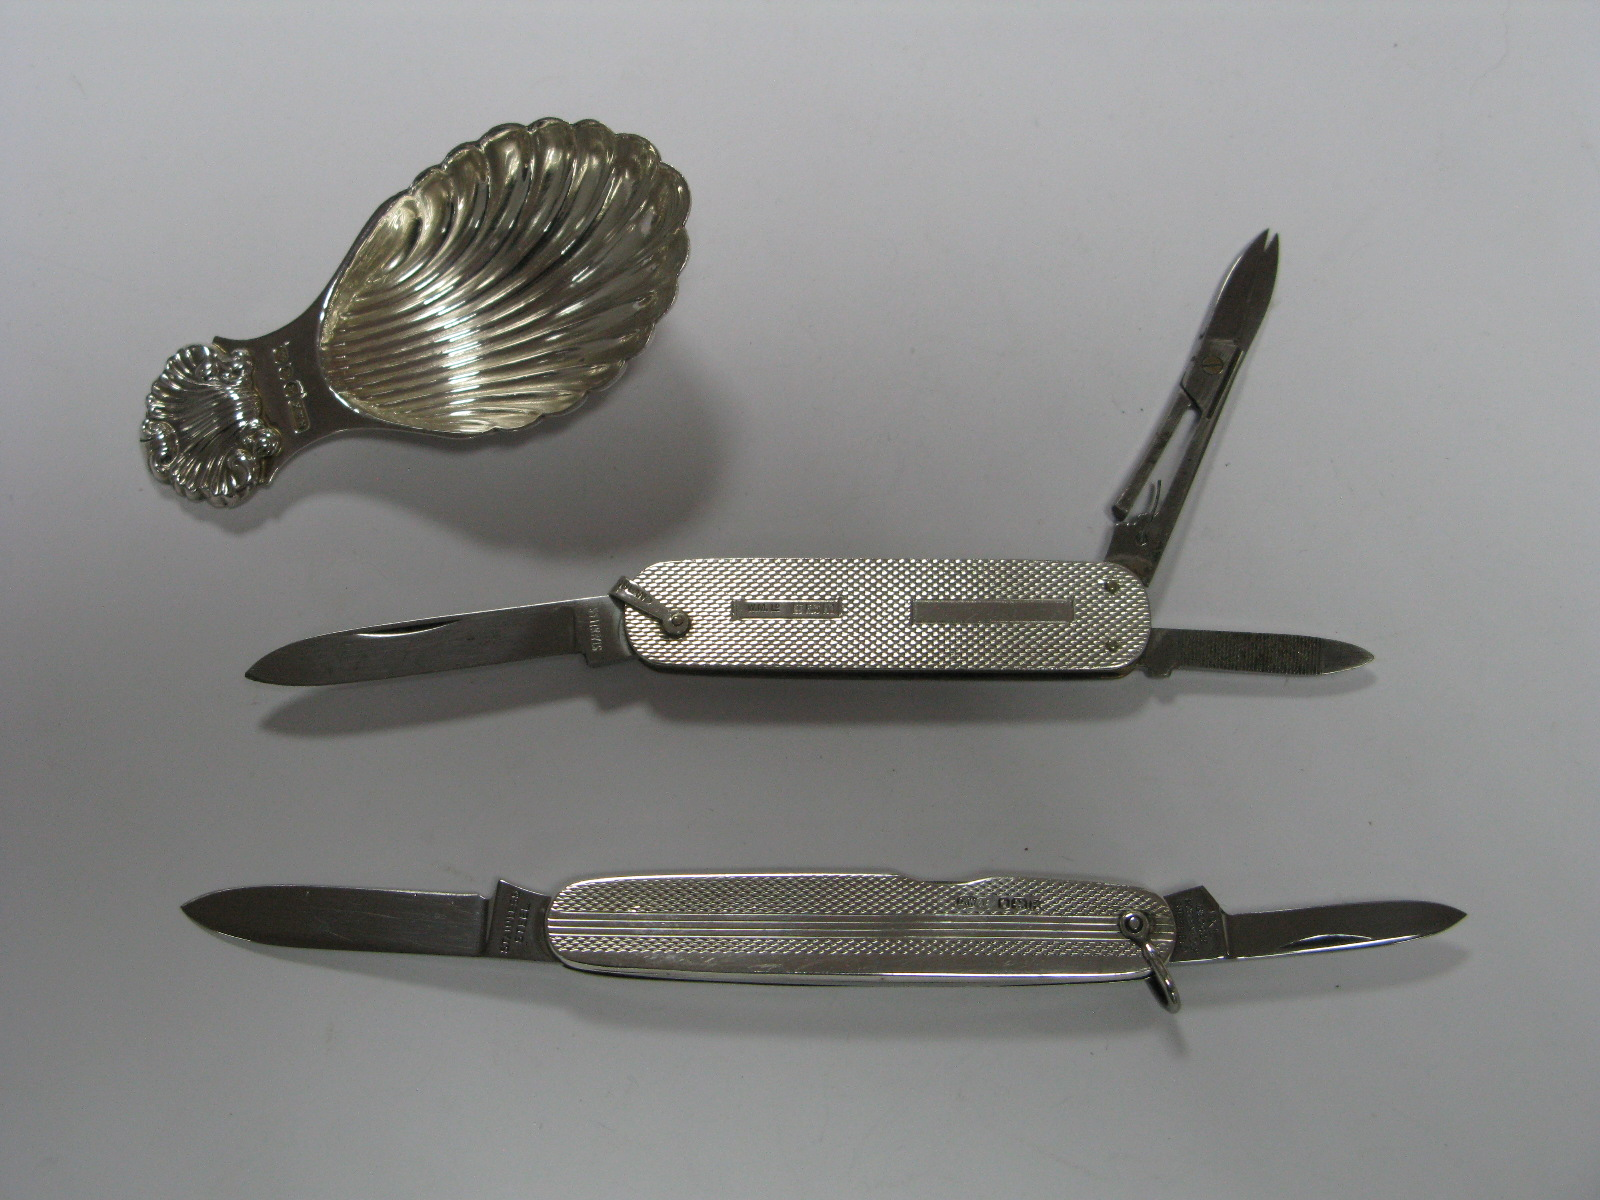 Lot 286 - A Multi Function Folding Pocket Knife, with hallmarked silver engine turned scales; a two blade